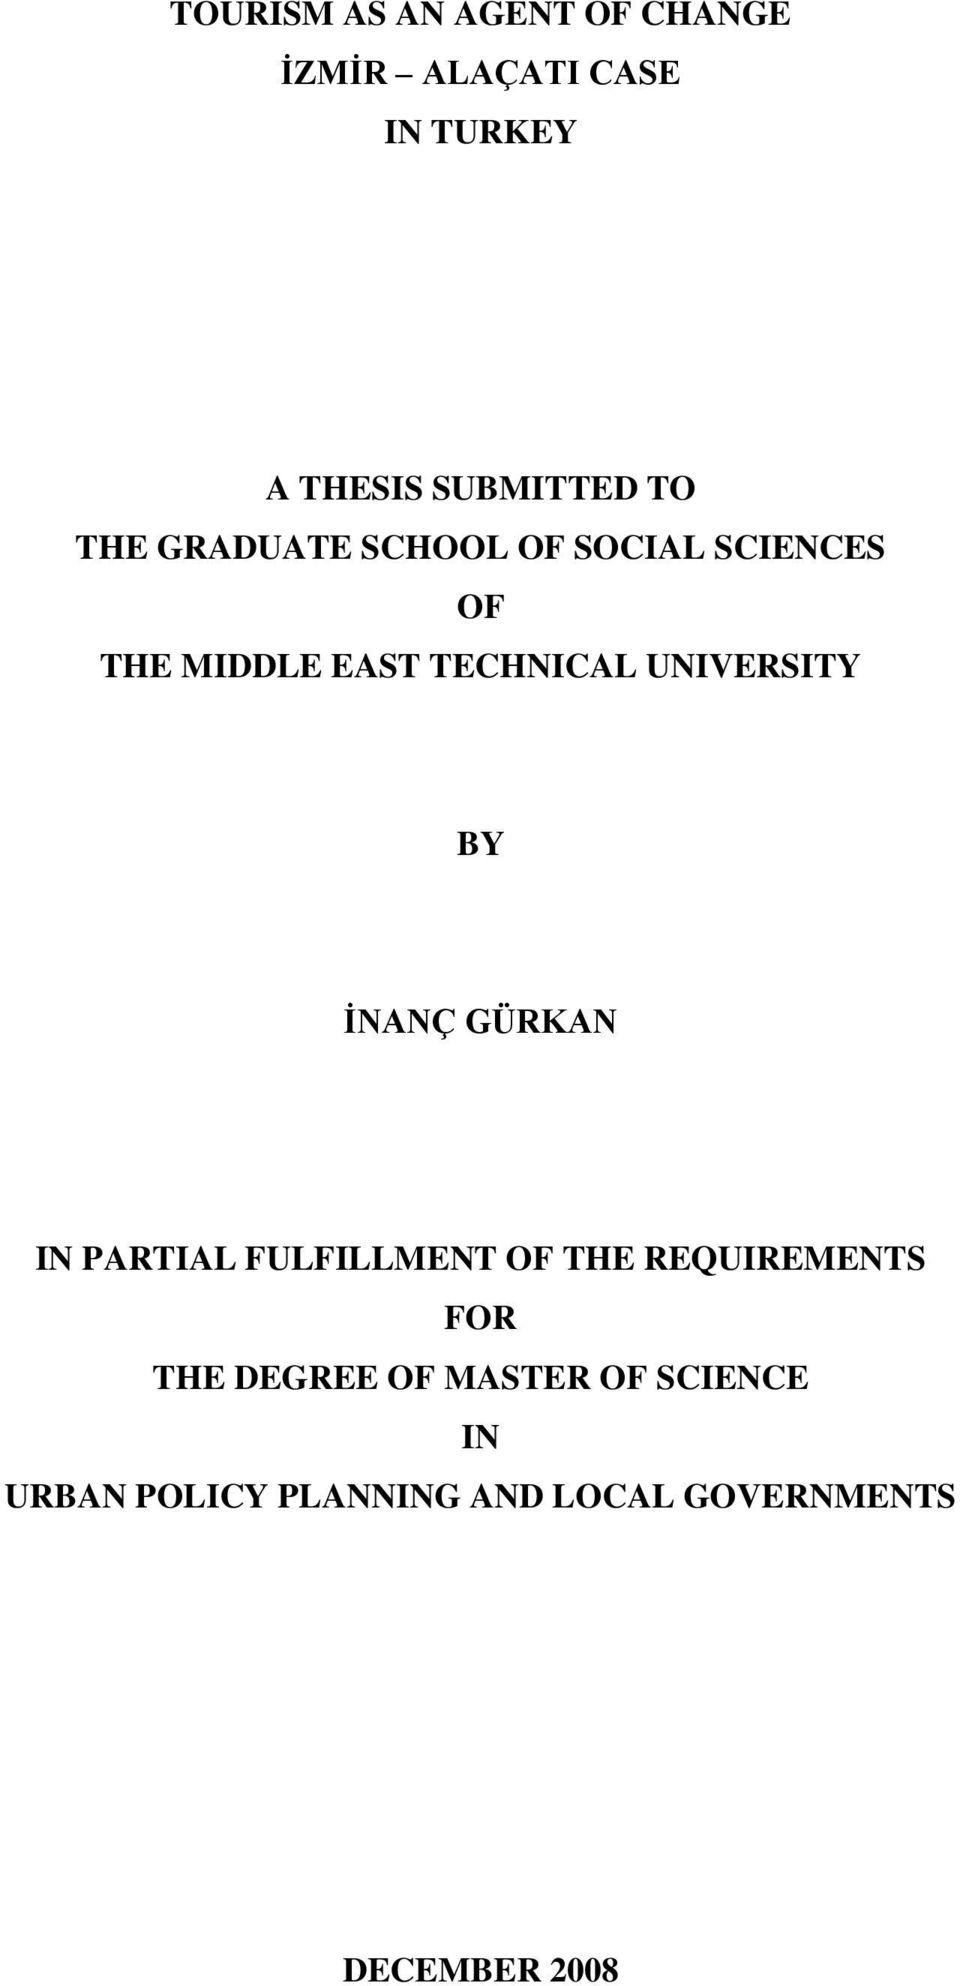 UNIVERSITY BY İNANÇ GÜRKAN IN PARTIAL FULFILLMENT OF THE REQUIREMENTS FOR THE